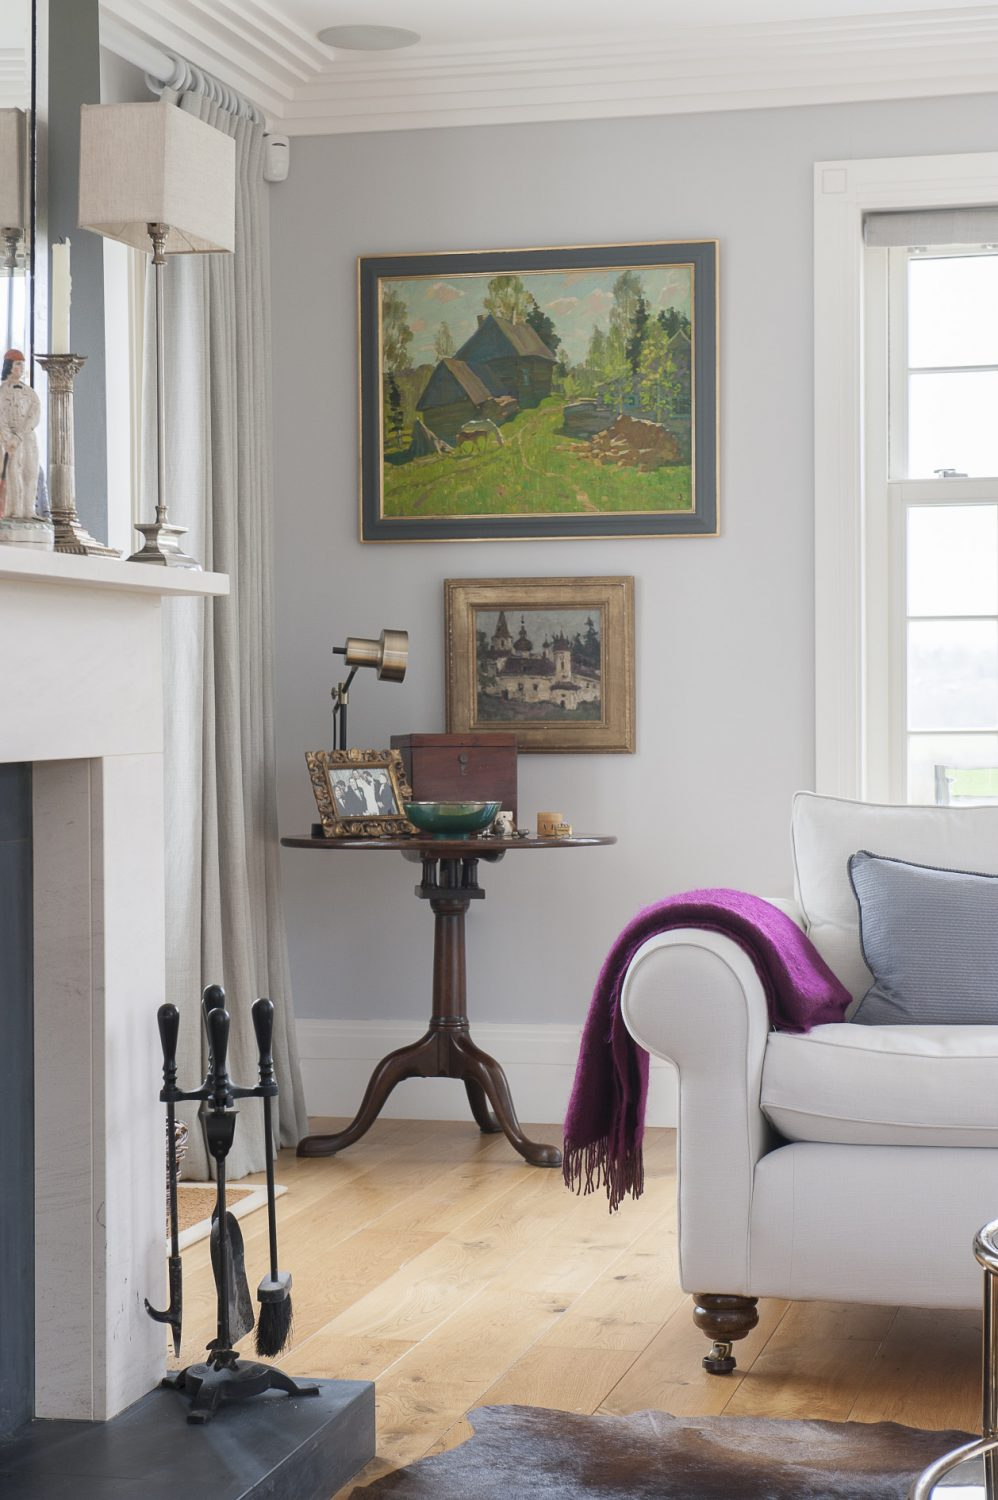 Bright oil paintings and a rich pink blanket add colour to the simple but comfortable living area